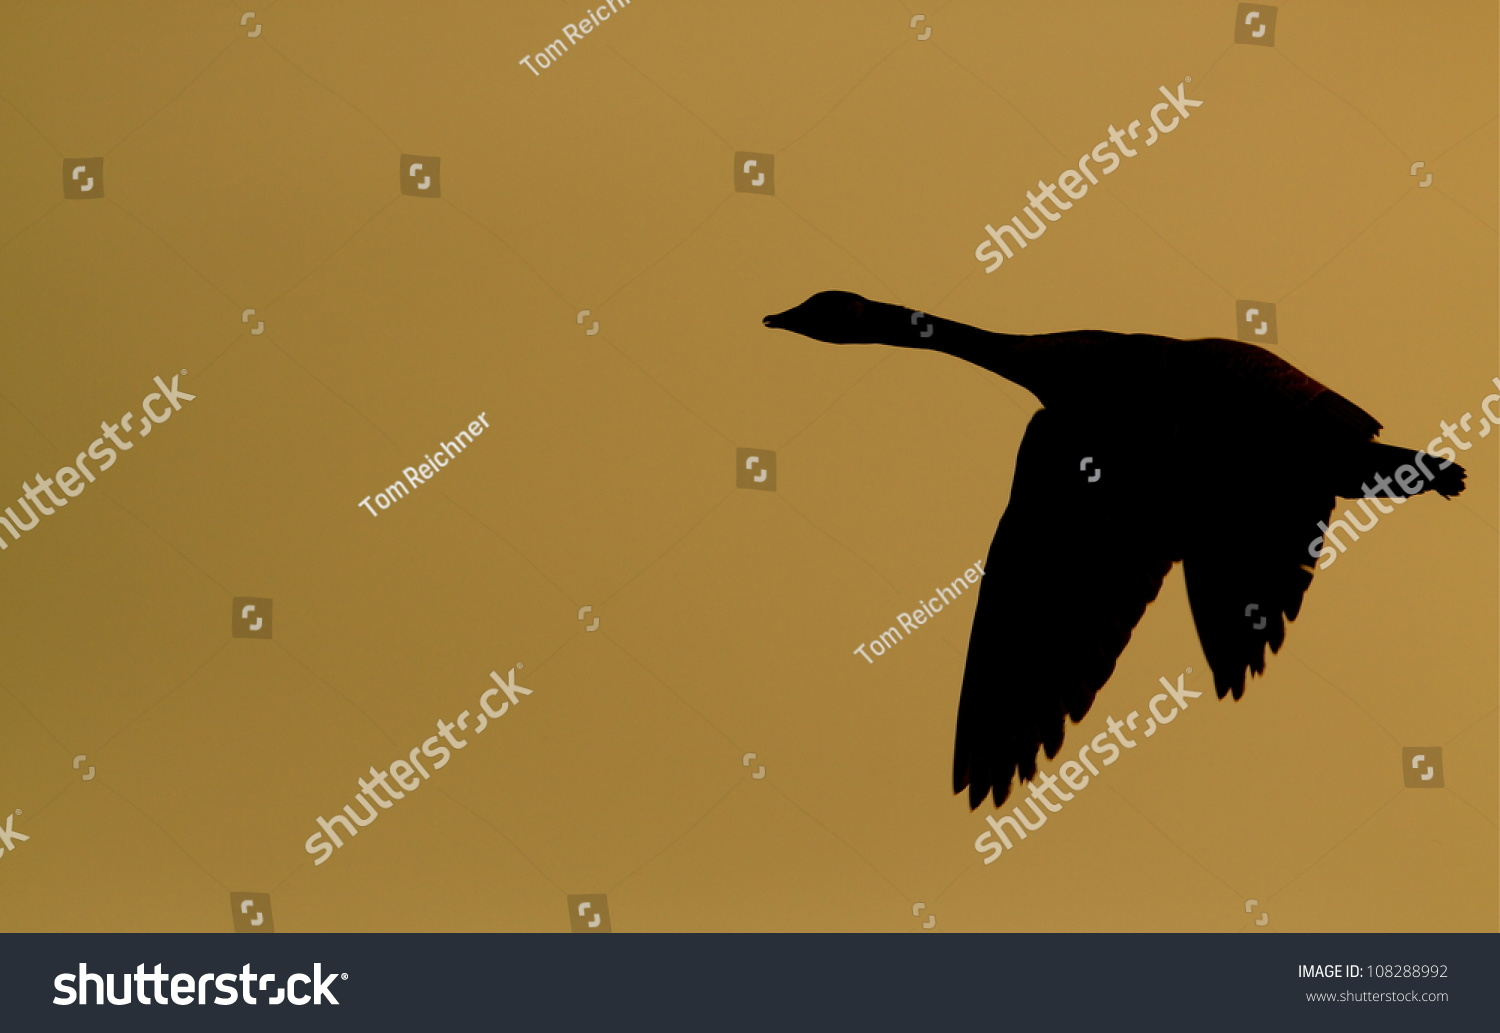 Canada goose silhouette flying against warm stock photo 108288992 canada goose silhouette flying against a warm background biocorpaavc